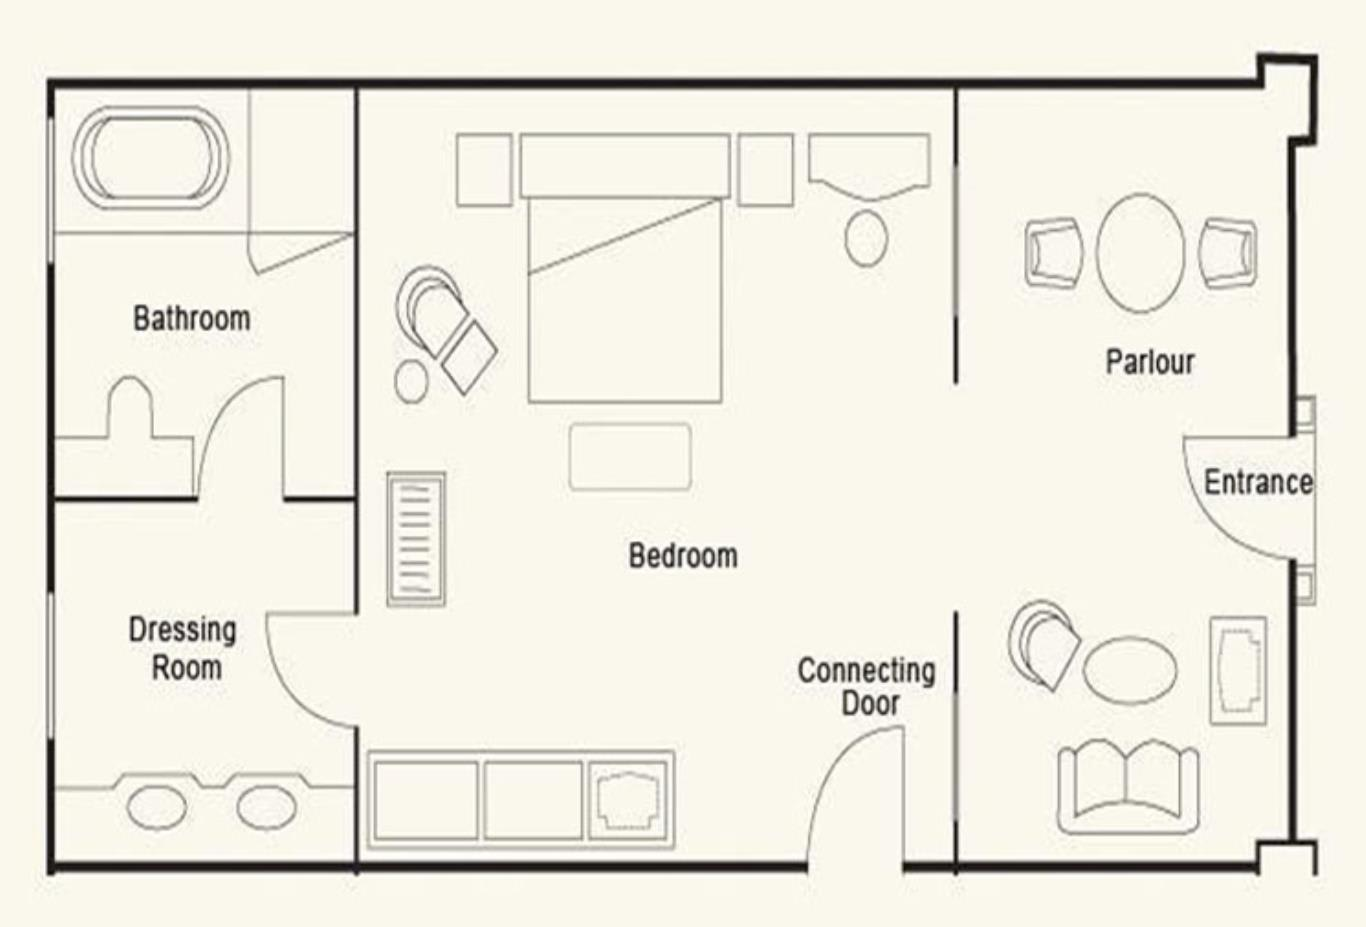 Floorplan of Court Suite